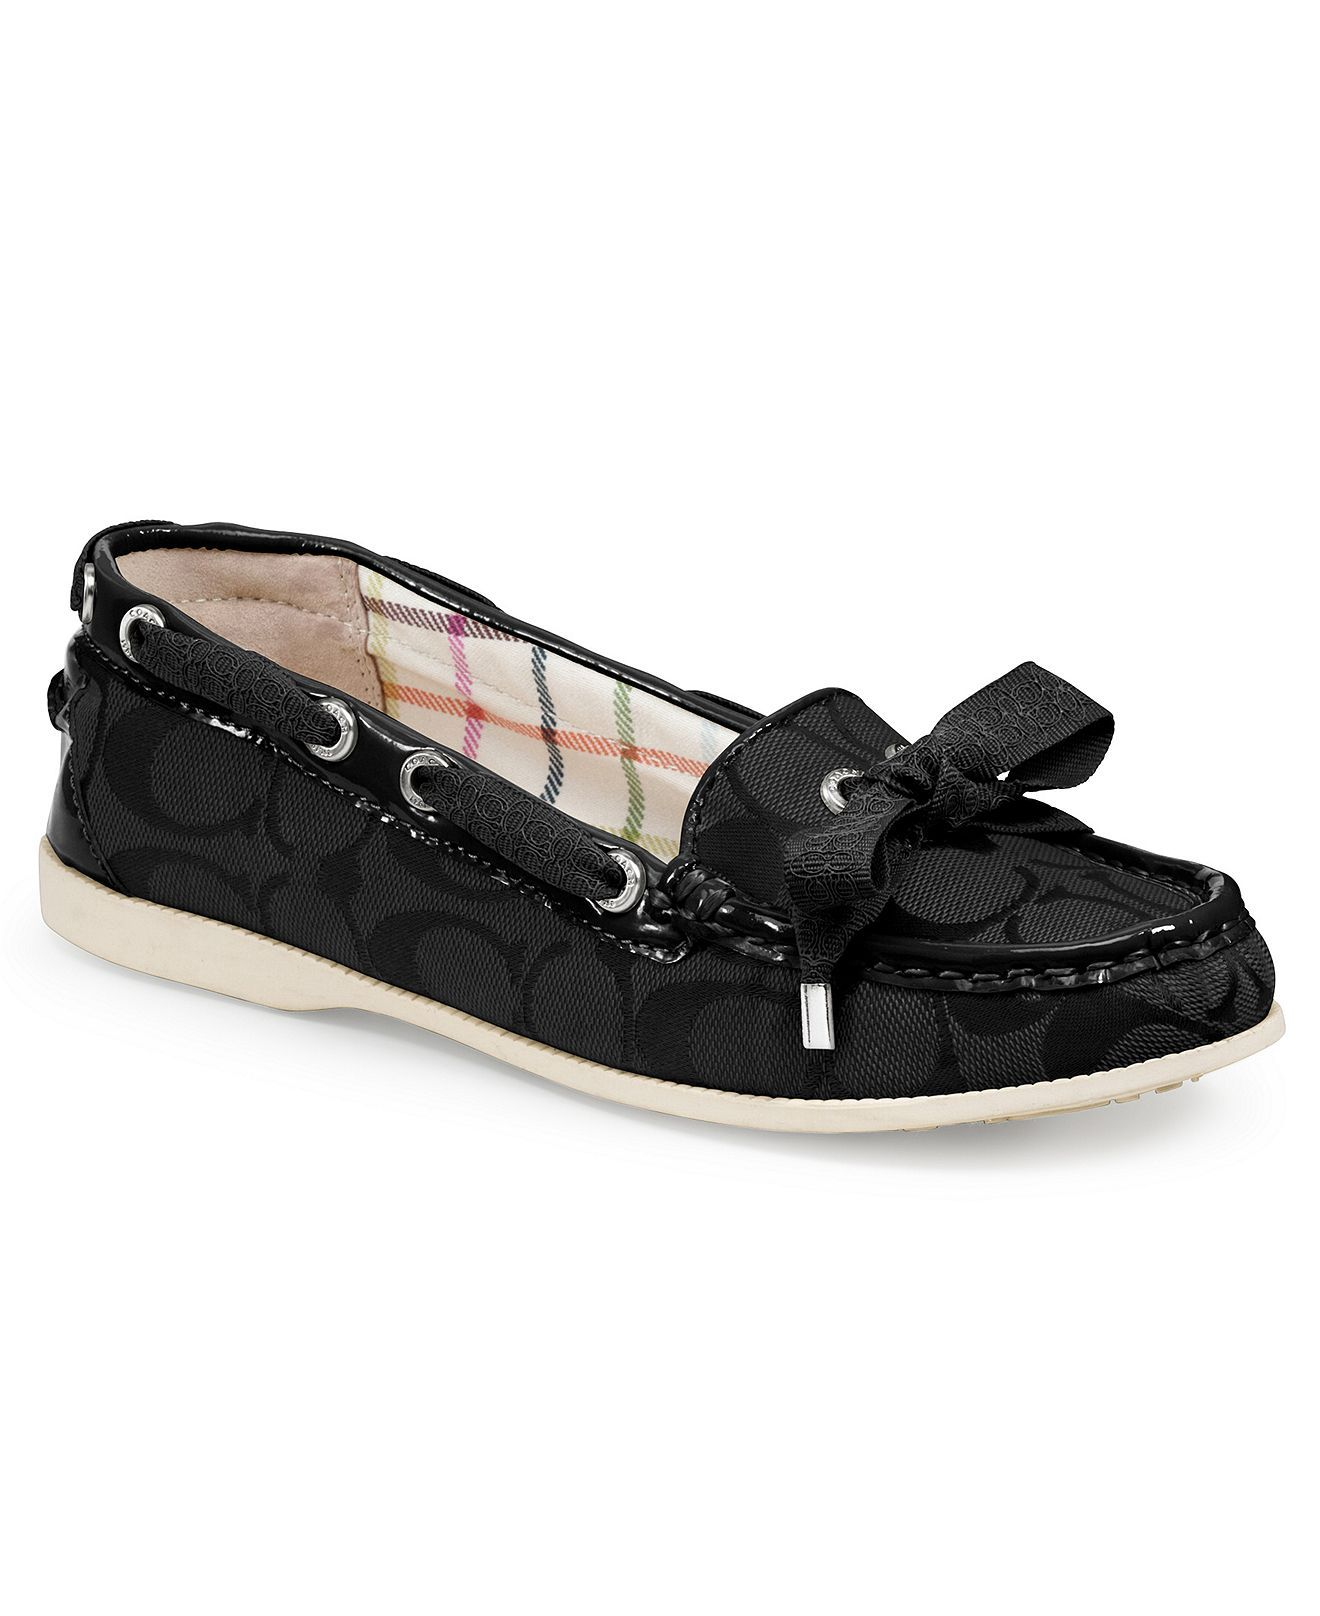 black and gray coach online factory outlet efoz  discount coach shoes online